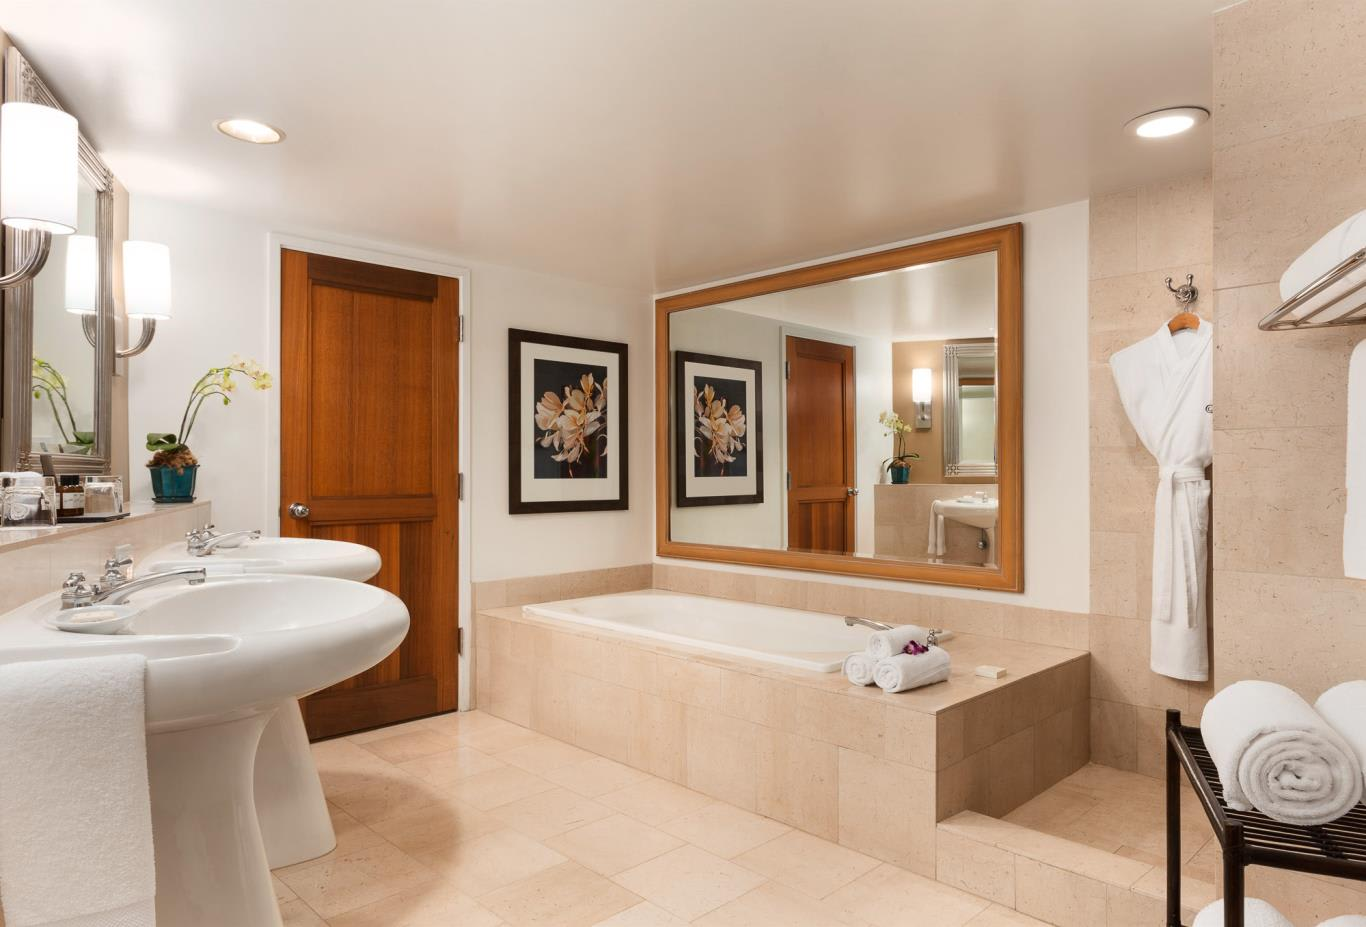 Fairmont Suite bathroom